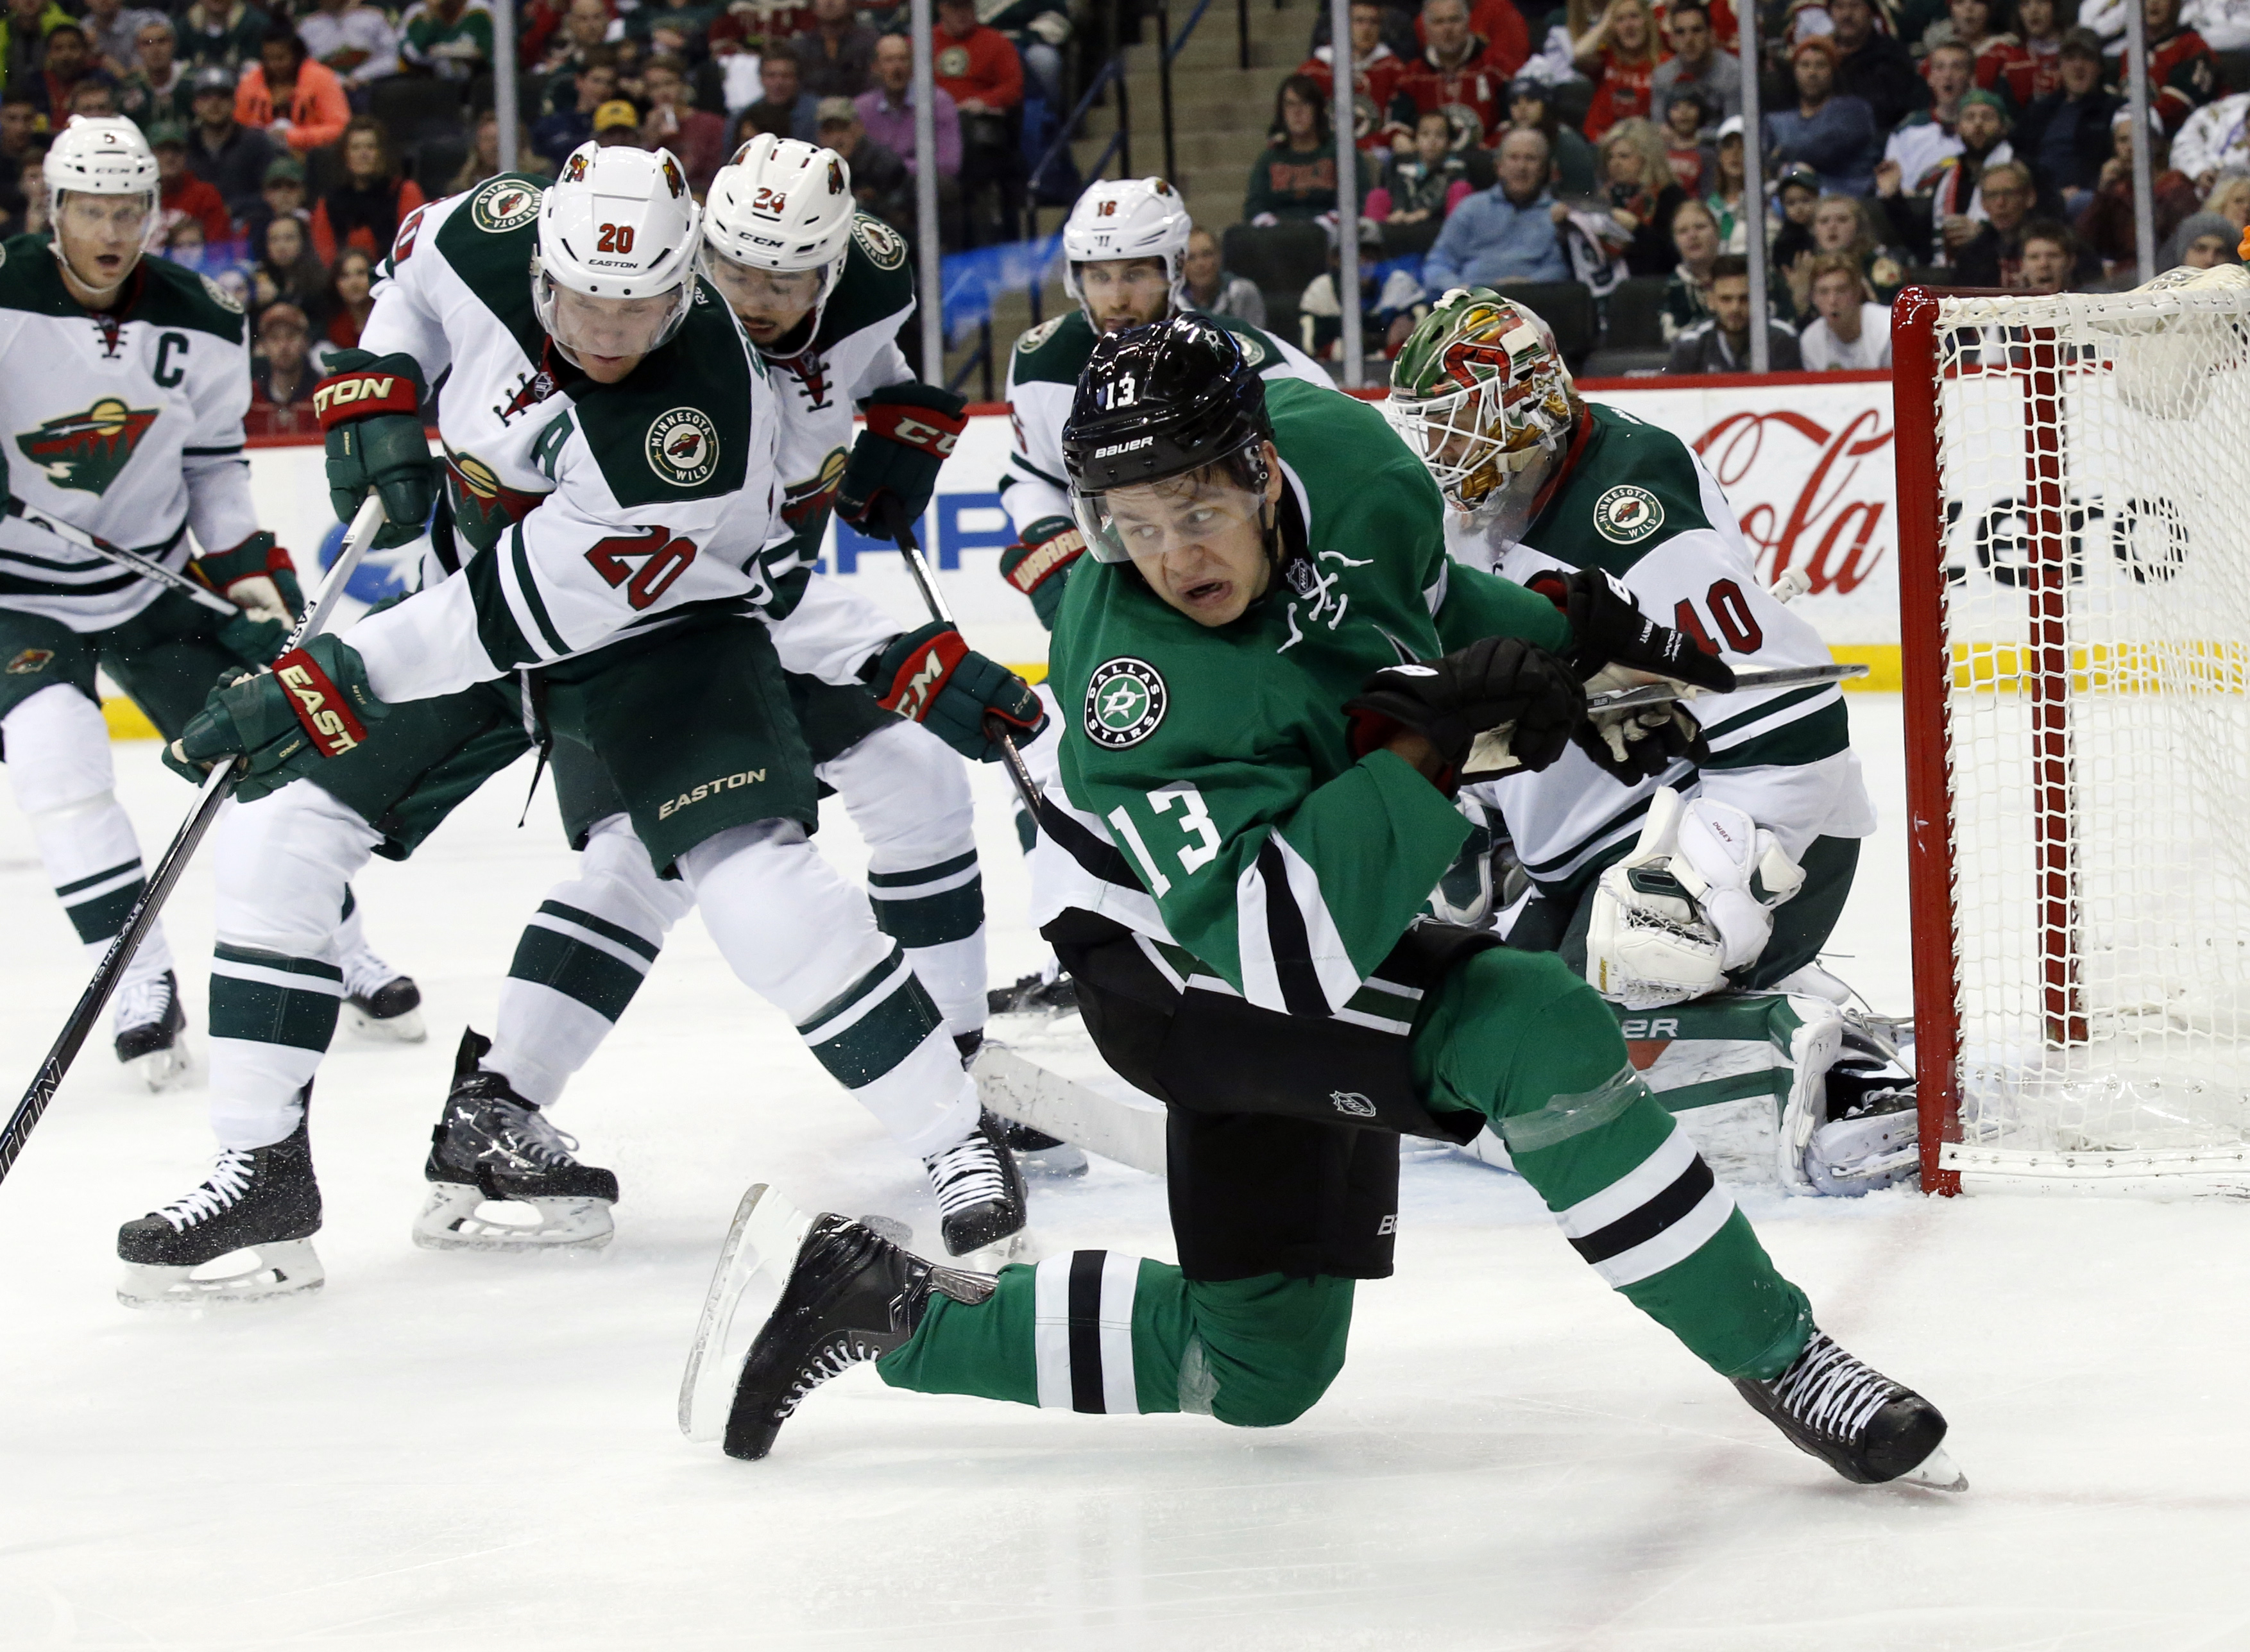 Dallas Stars center Mattias Janmark (13), from Sweden, spins around to look for the rebounding puck with Minnesota Wild defenseman Ryan Suter (20), Wild goalie Devan Dubnyk (40), and others behind, in the second period of an NHL hockey game, Monday, Dec.